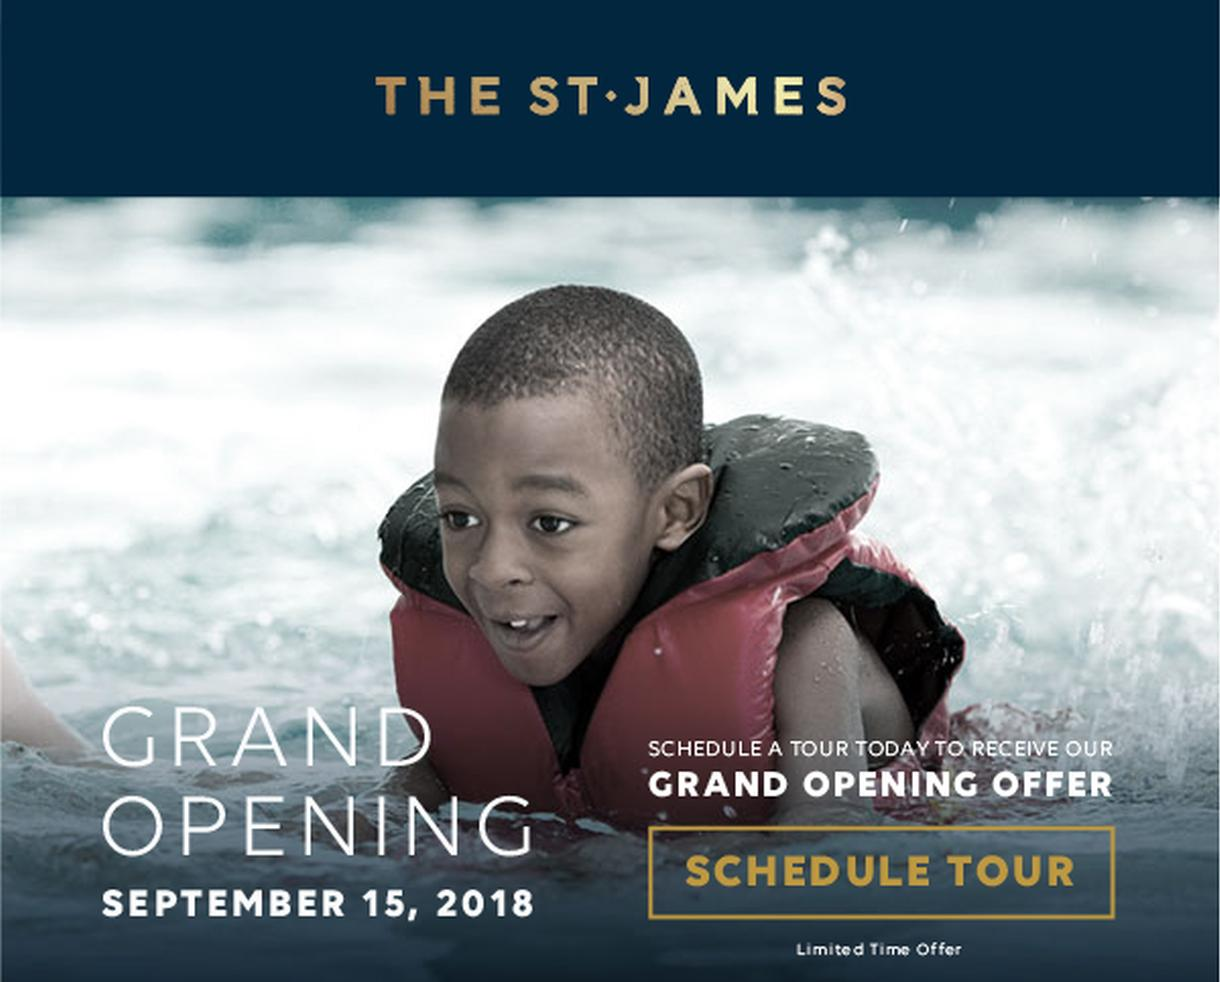 THE ST. JAMES: Grand Opening September 15th!